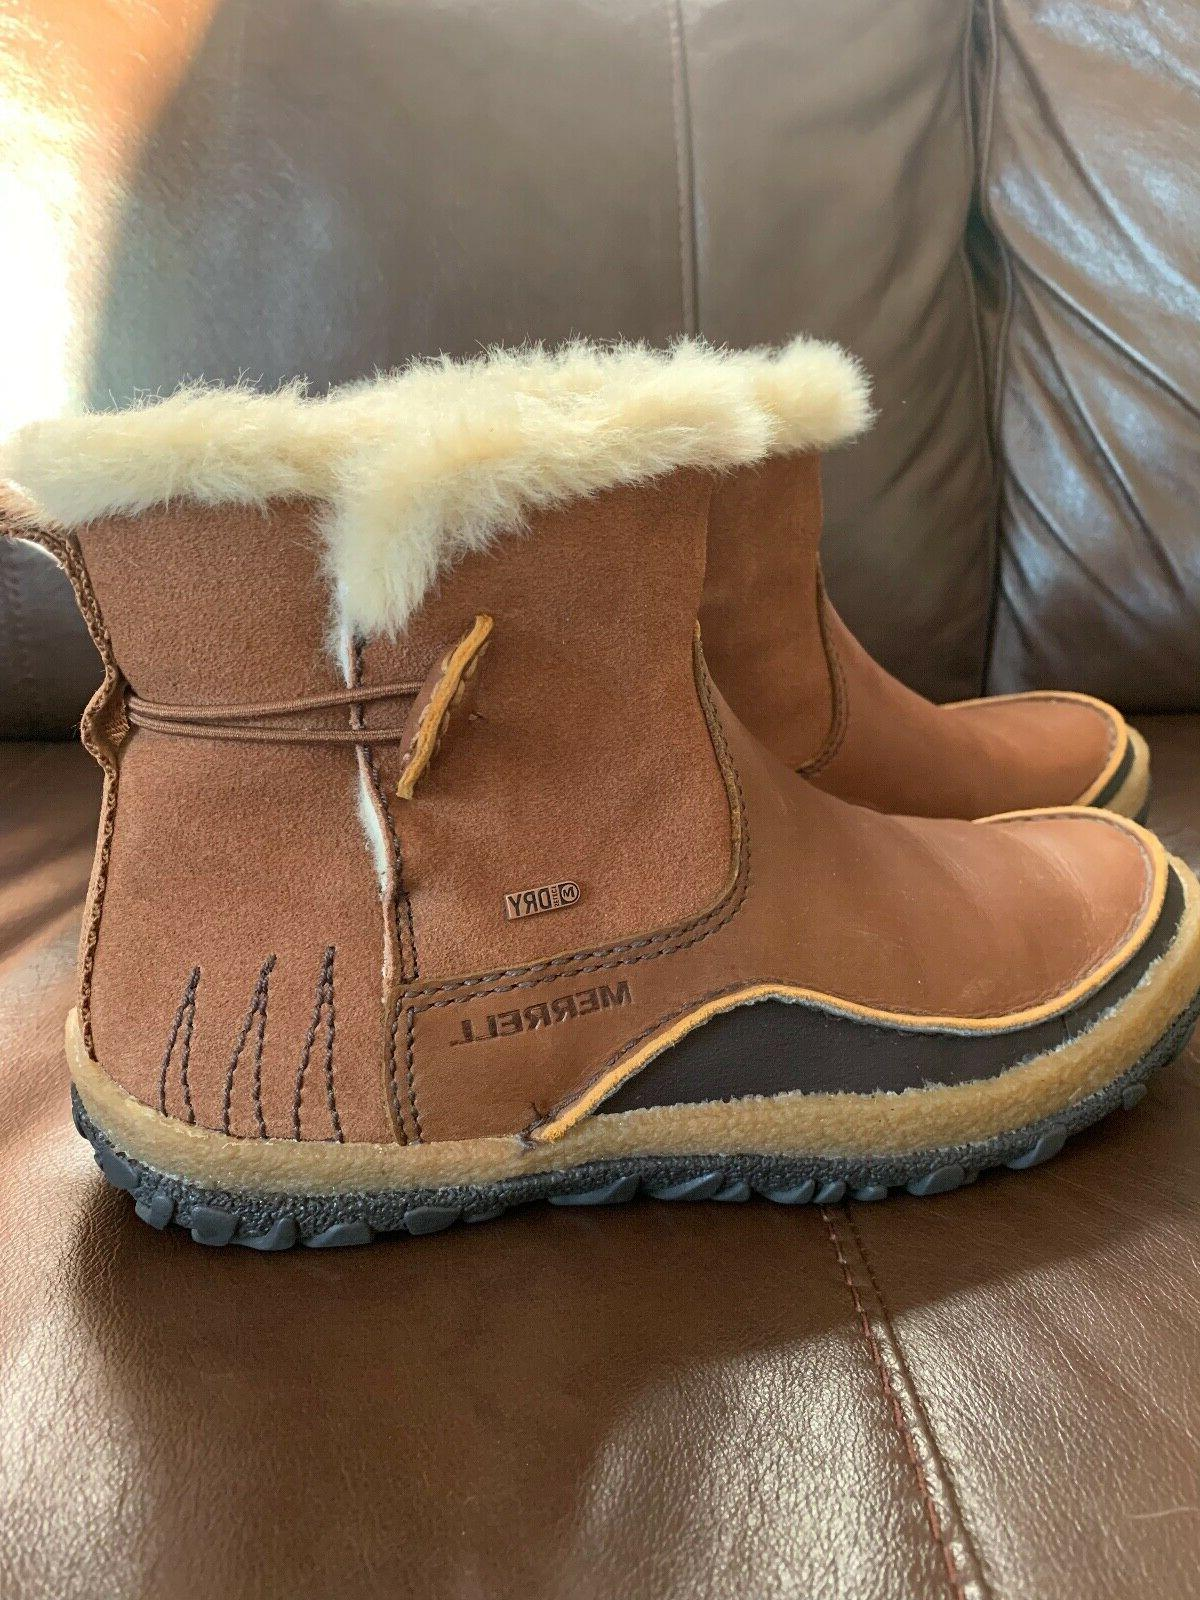 size 9 tremblant pull on boot